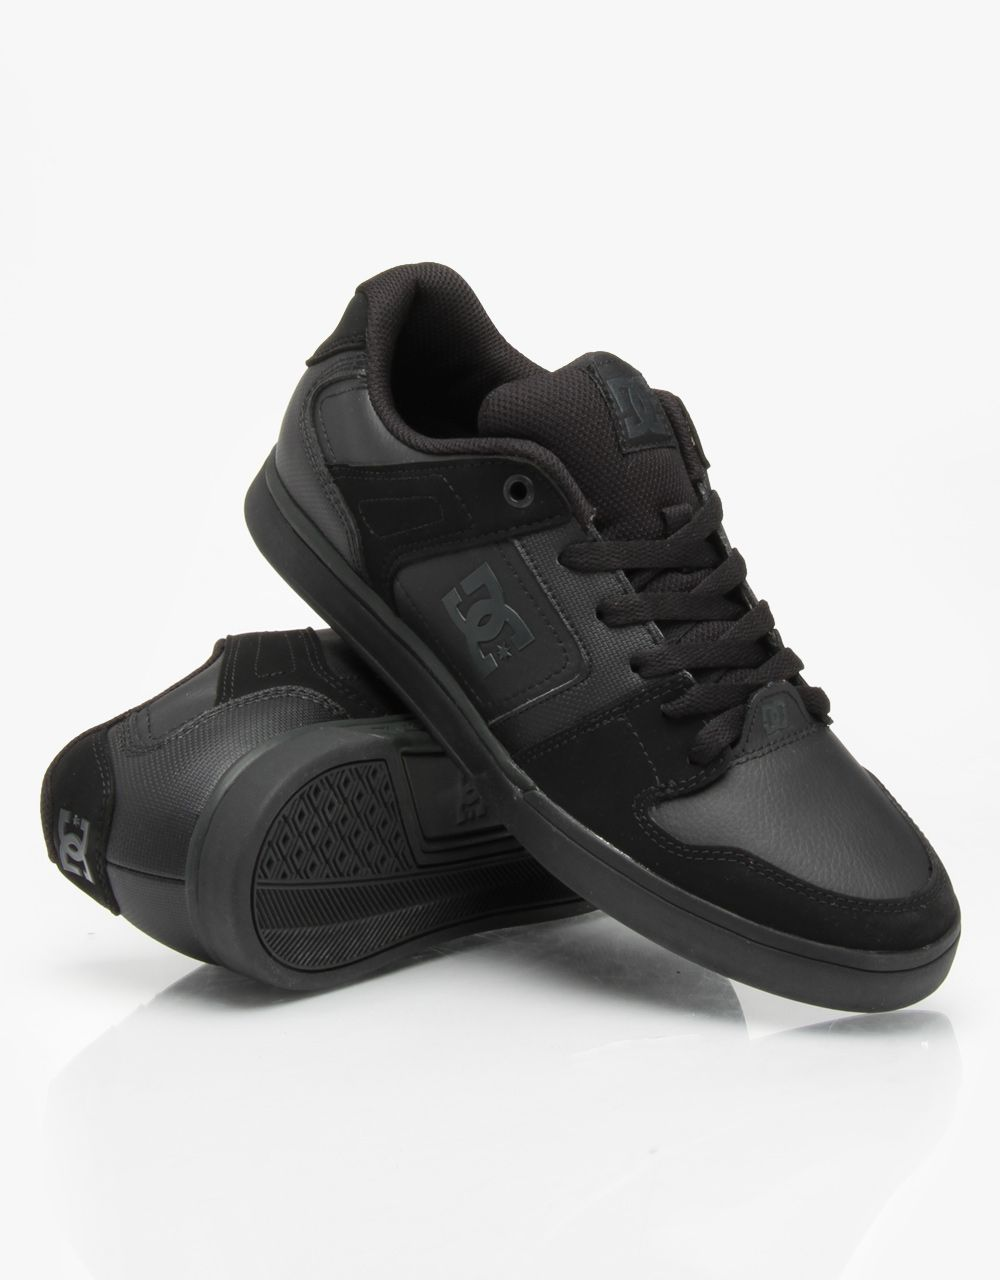 DC Static Skate Shoes - Pirate Black/Black - RouteOne.co.uk